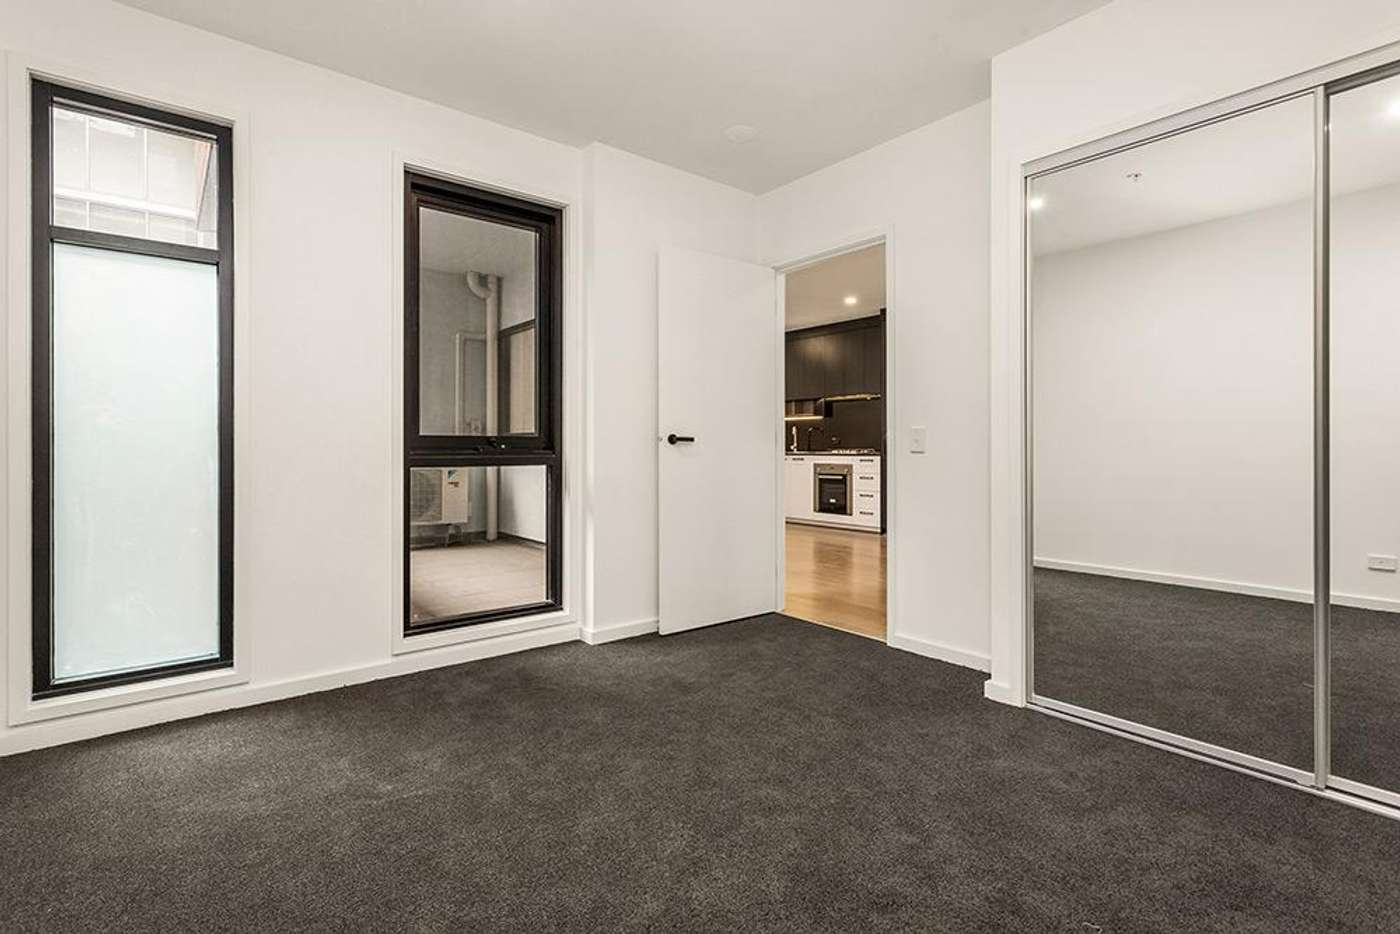 Fifth view of Homely apartment listing, 307/8 Breese Street, Brunswick VIC 3056